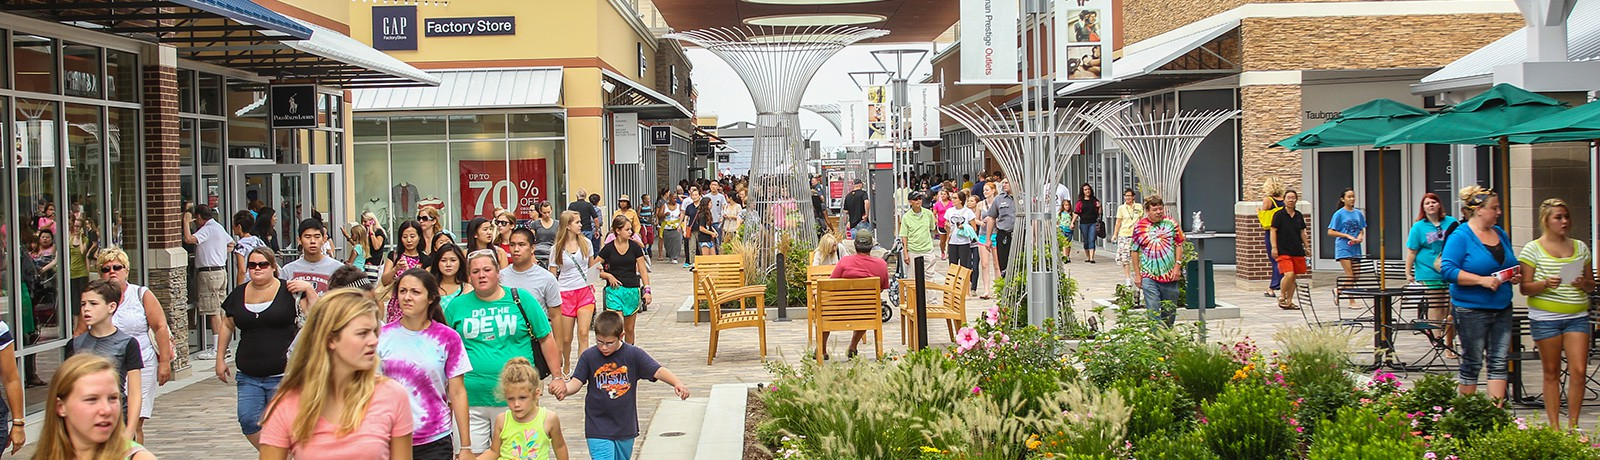 Taubman Prestige Outlets Chesterfield is the best located outlet center in the St. Louis market with the opportunity to add a range of value-price, full-price, big-box, dining, and entertainment venues in one convenient location.